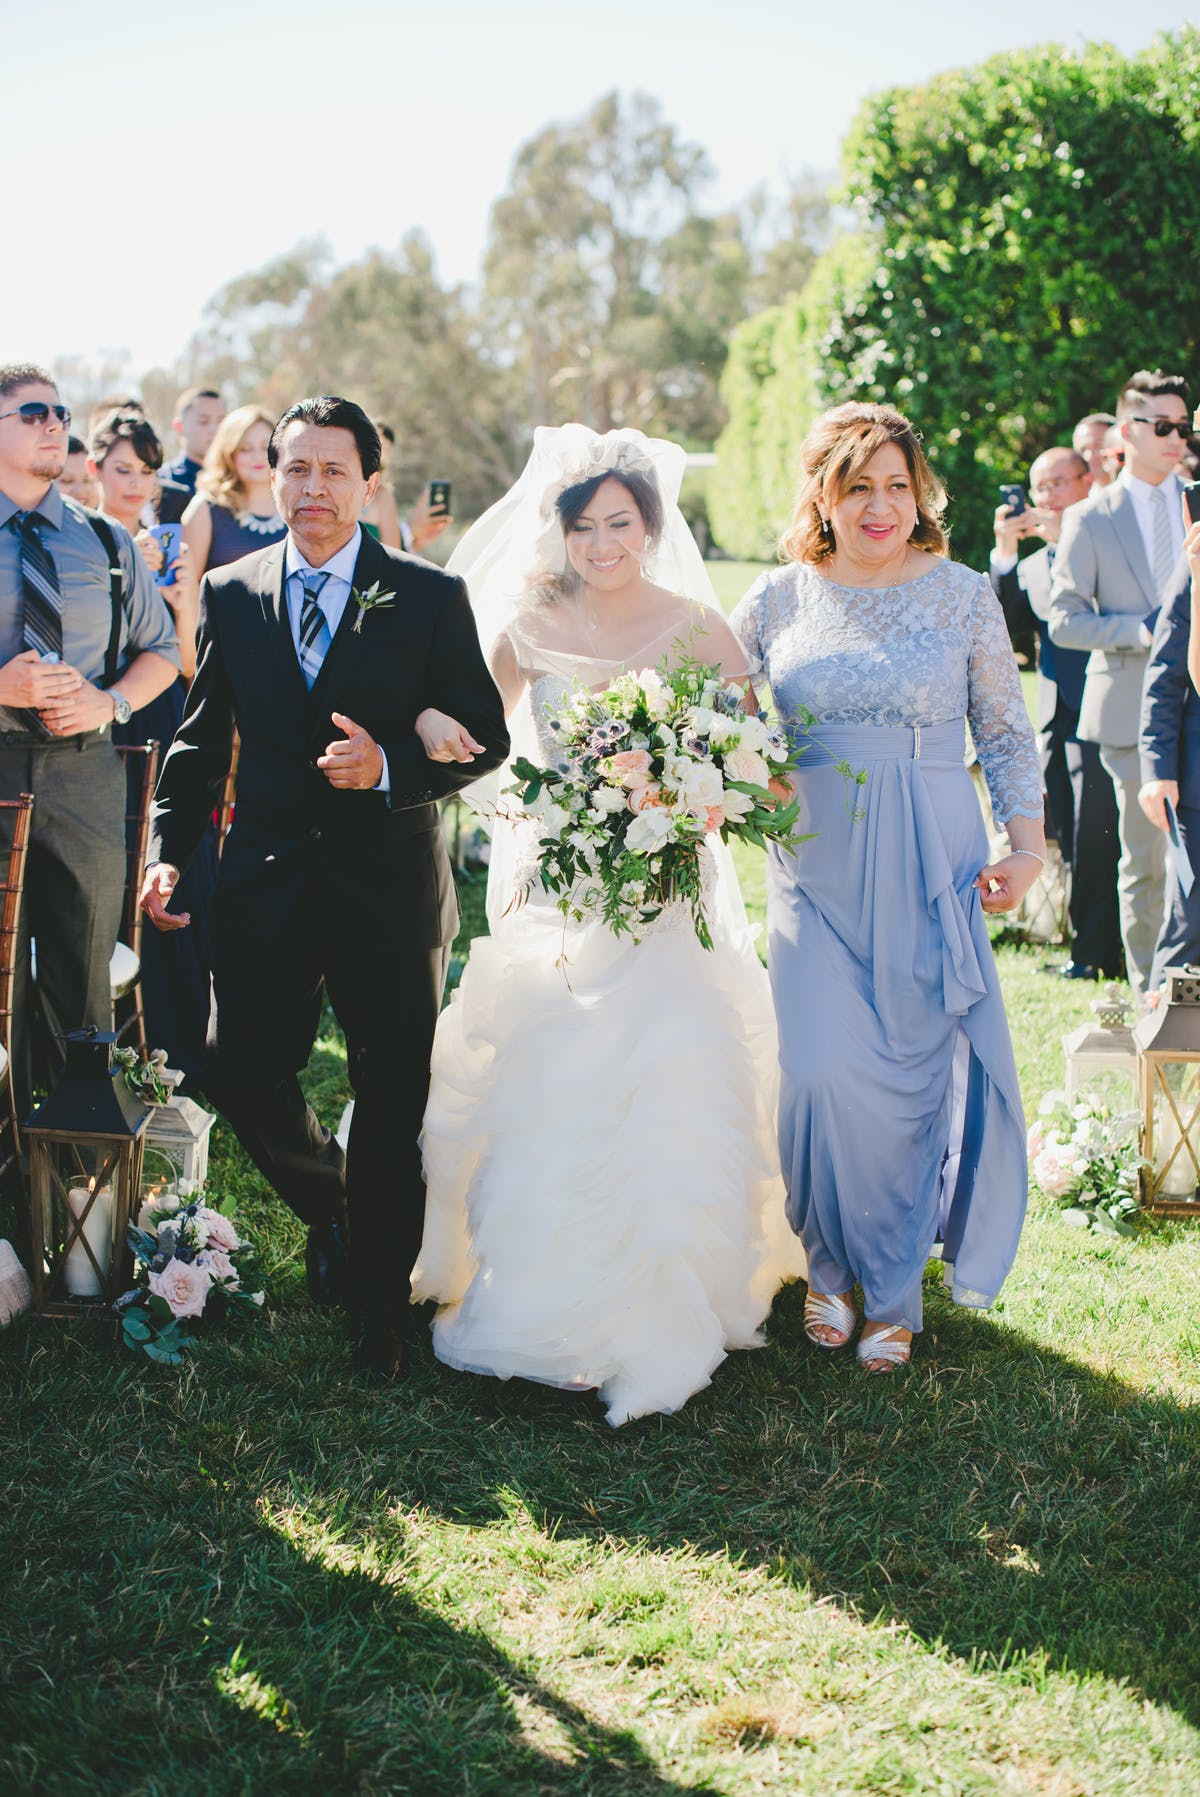 www.santabarbarawedding.com | One Love Photography | Bacara Resort & Spa | Alegria by Design | Enchanted Garden Floral Design | Mother and Father Walk Bride Down The Aisle